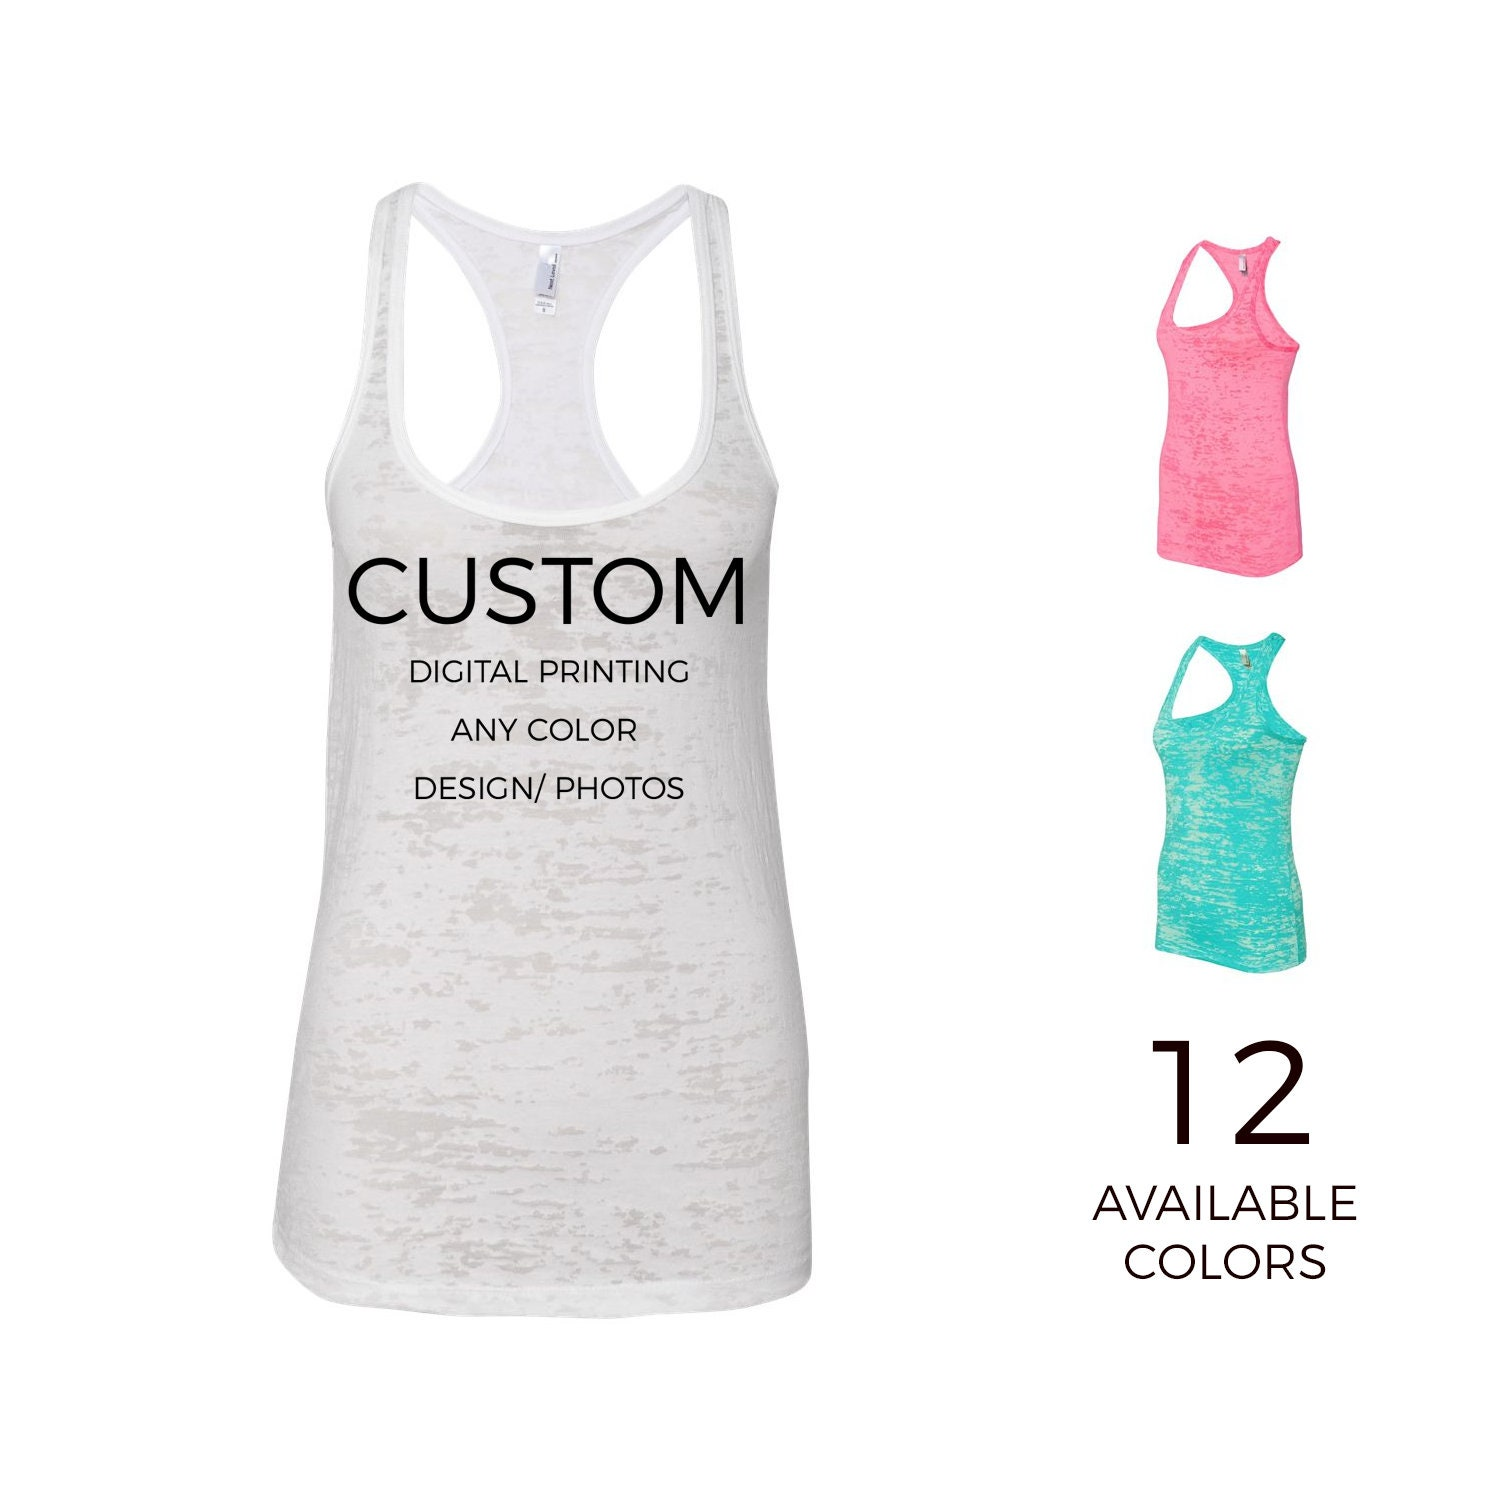 5884e1ded41d Women's Adult Personalized Burnout Racerback Tank - Your Own Designs,  Logos, Text - Custom Womens Shirts - Custom Printing -365Customize. gallery  photo ...